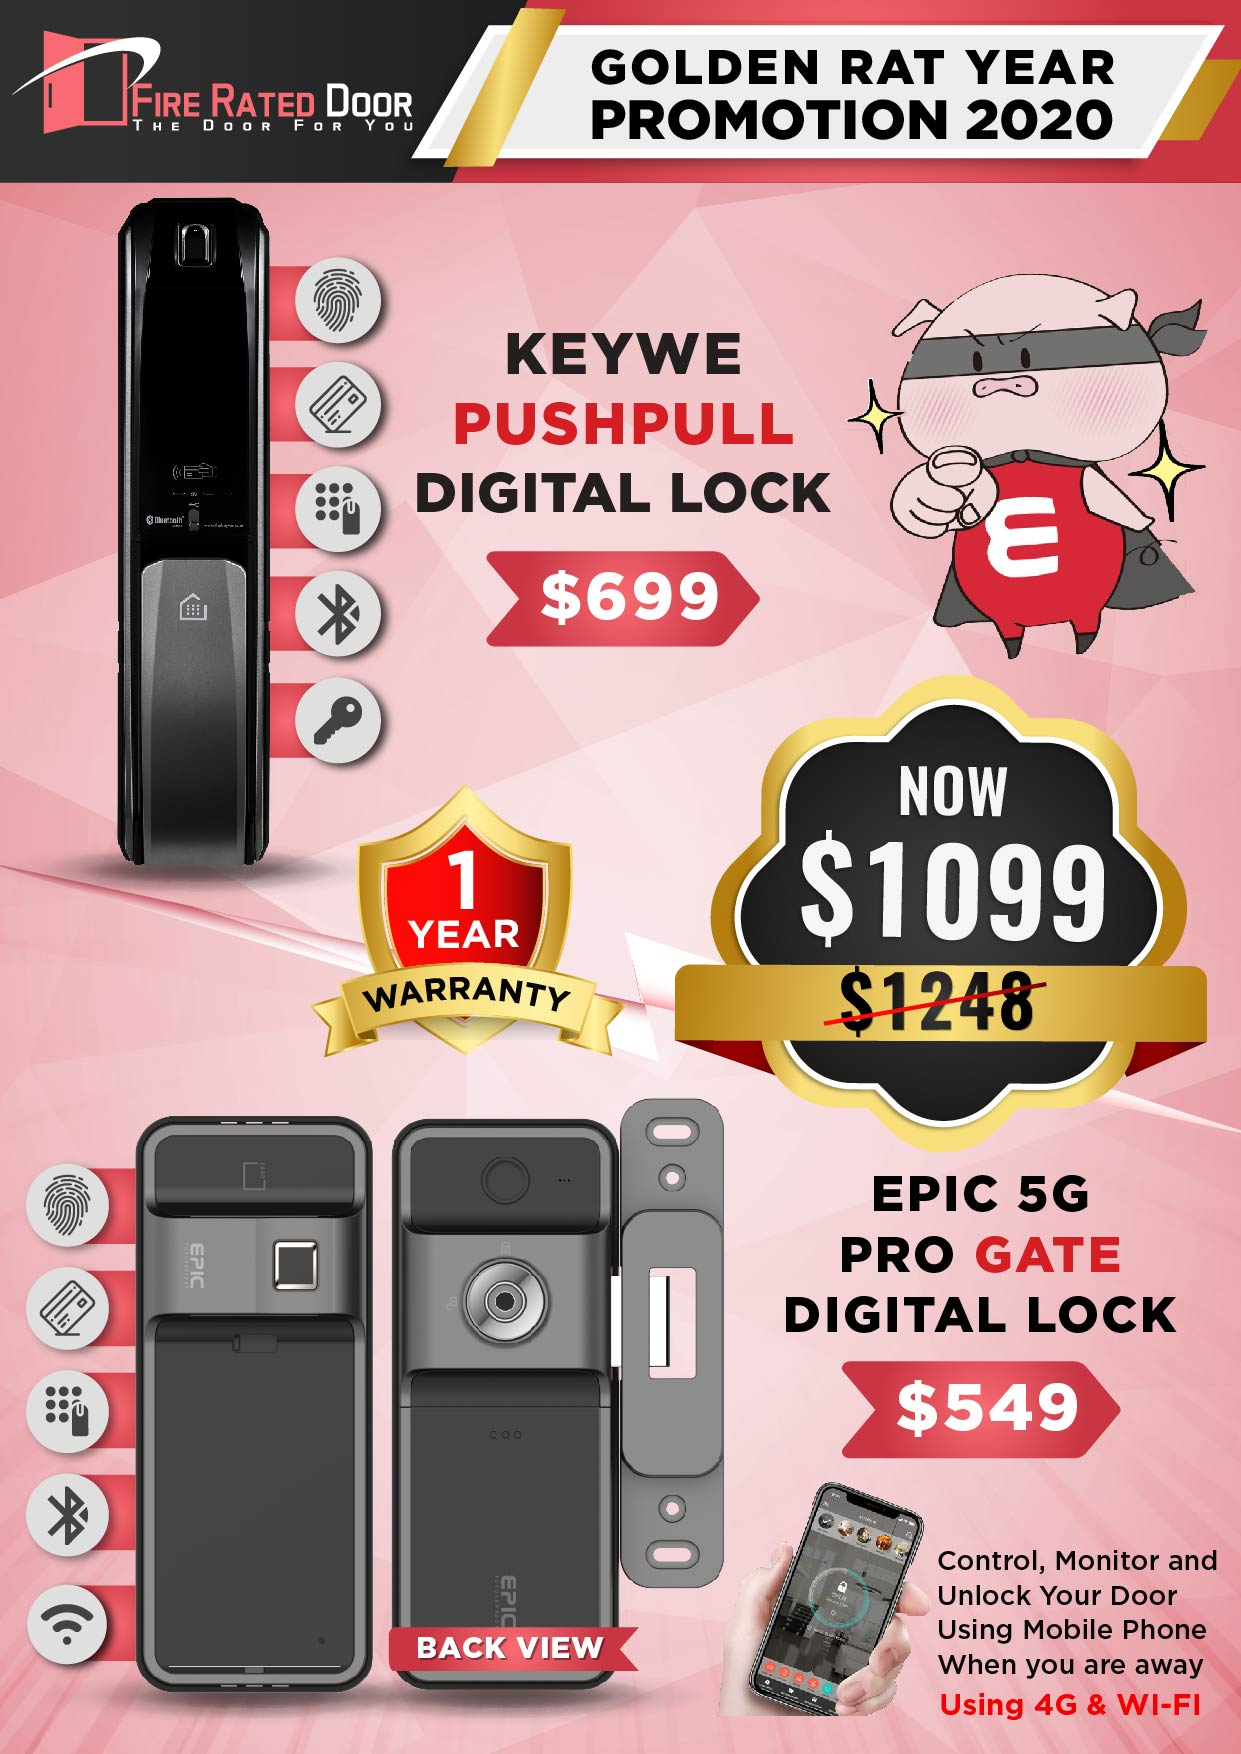 KEYWE Push Pull and EPIC 5G PRO Gate Digital Lock